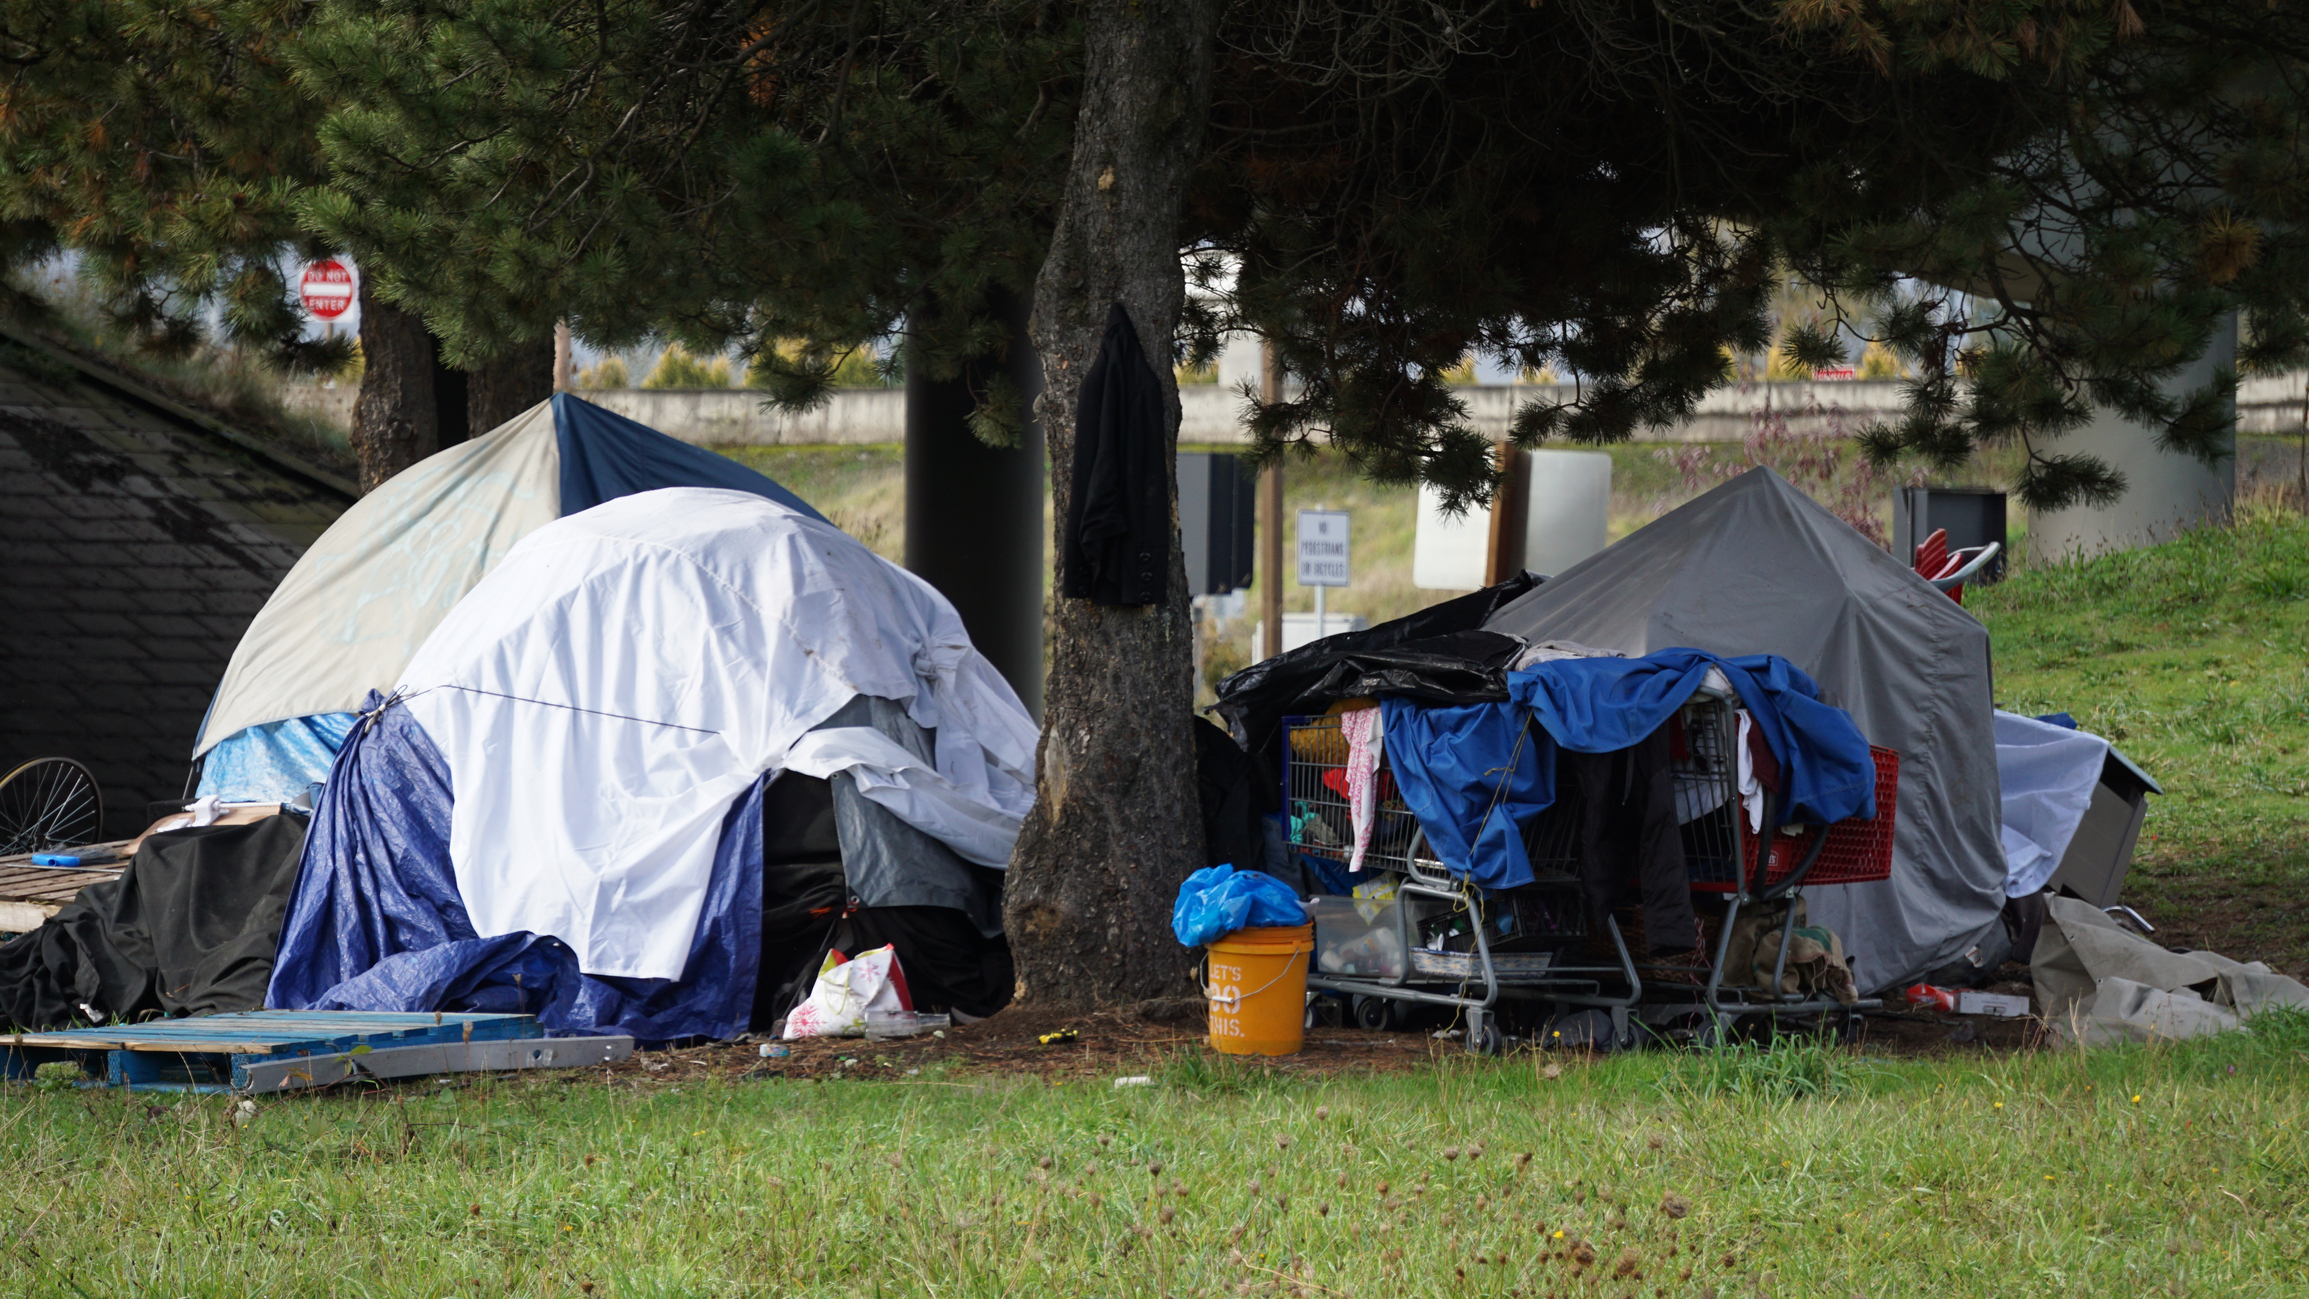 Homeless tent camp in the park